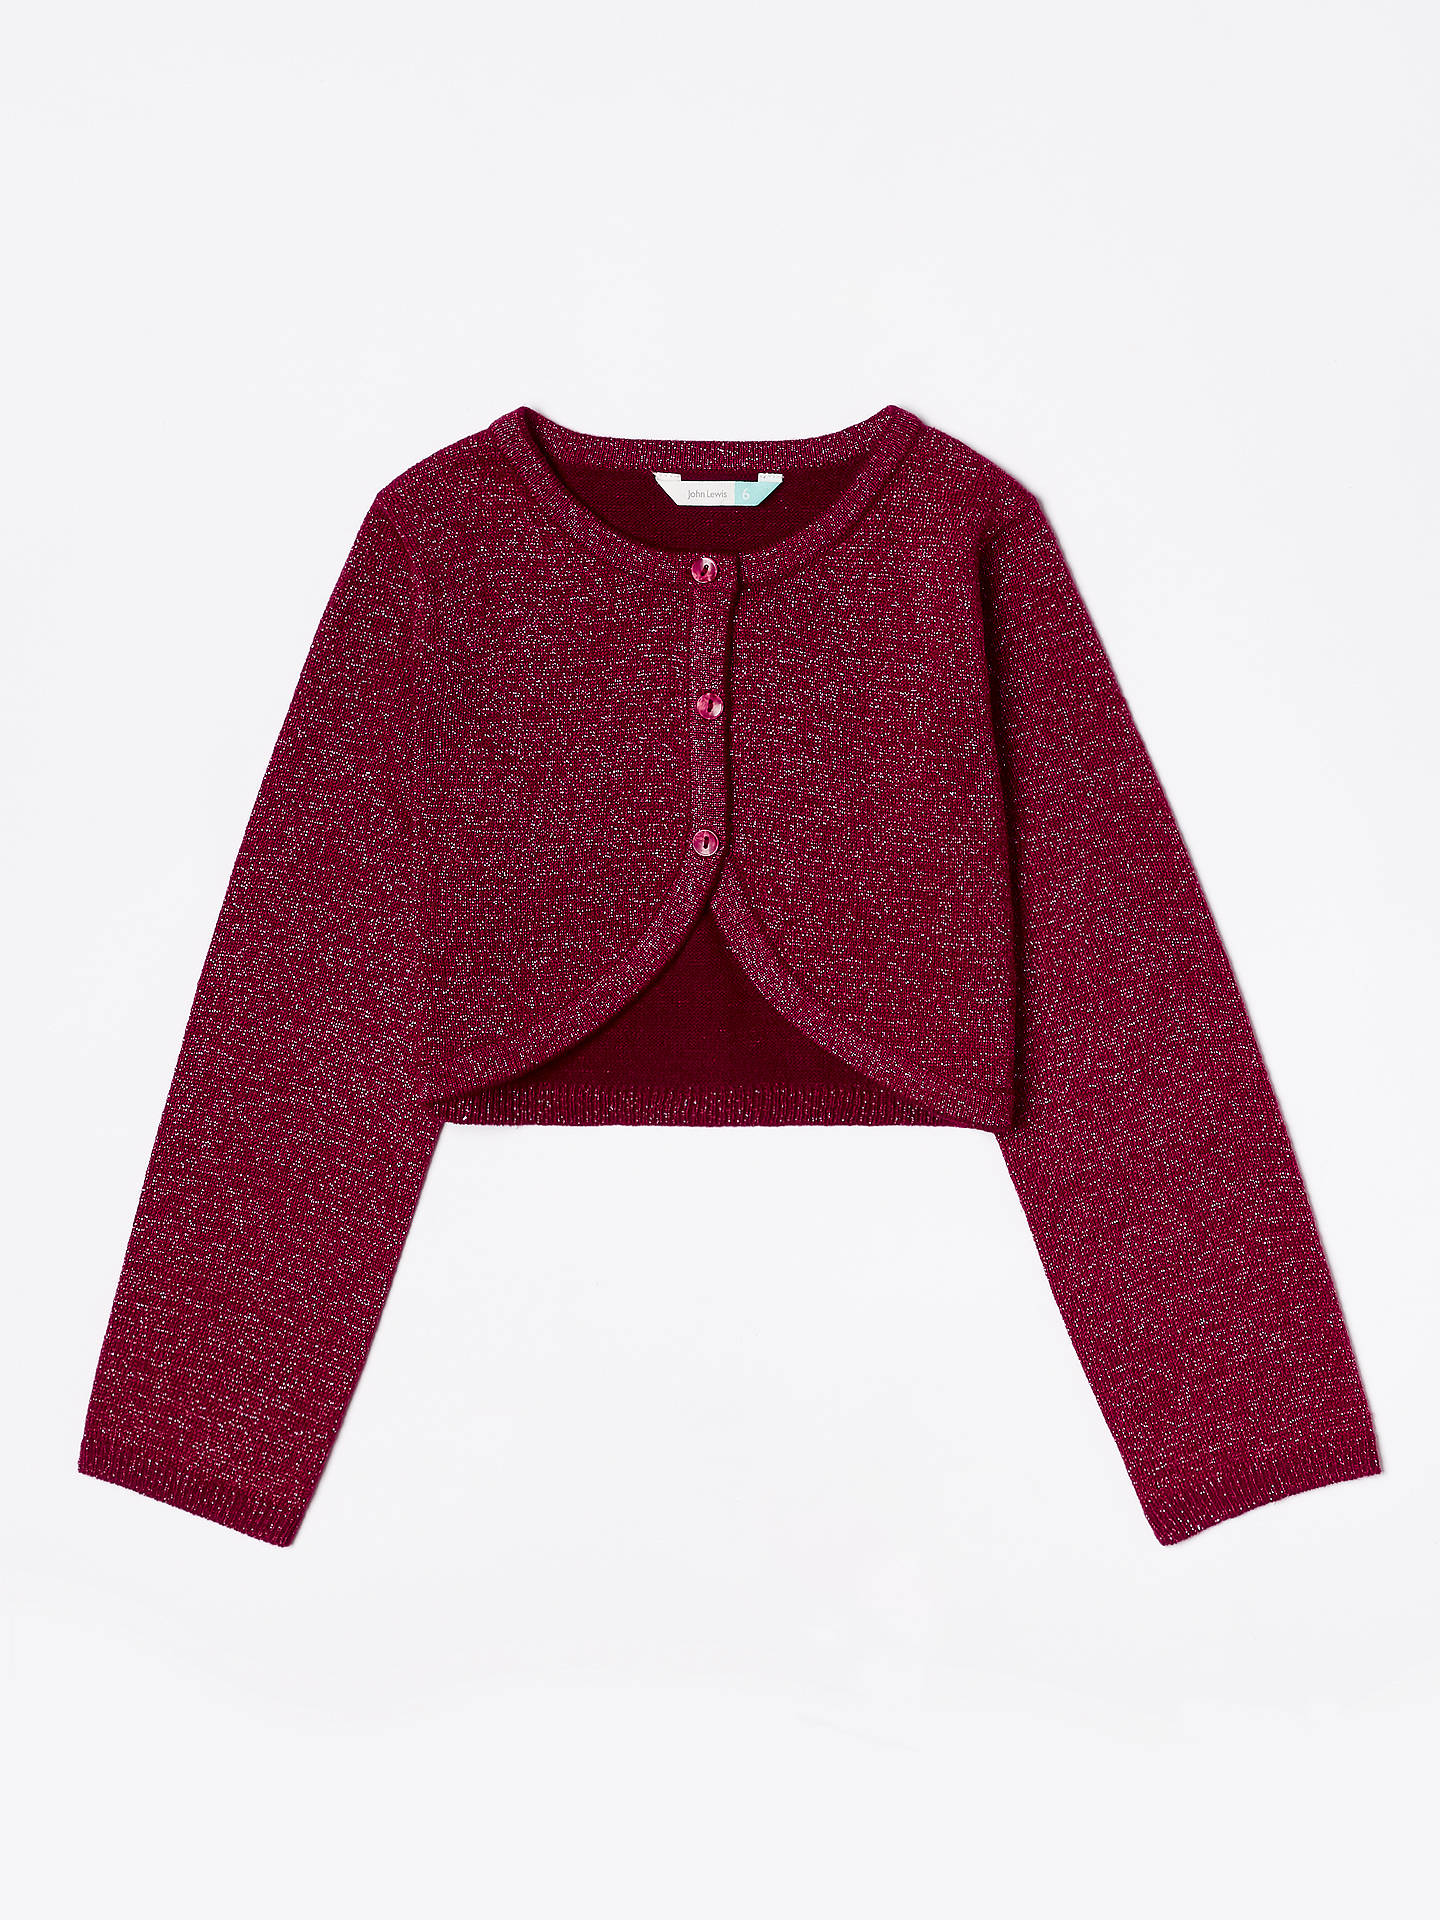 063e800b5 John Lewis   Partners Girls  Party Cardigan